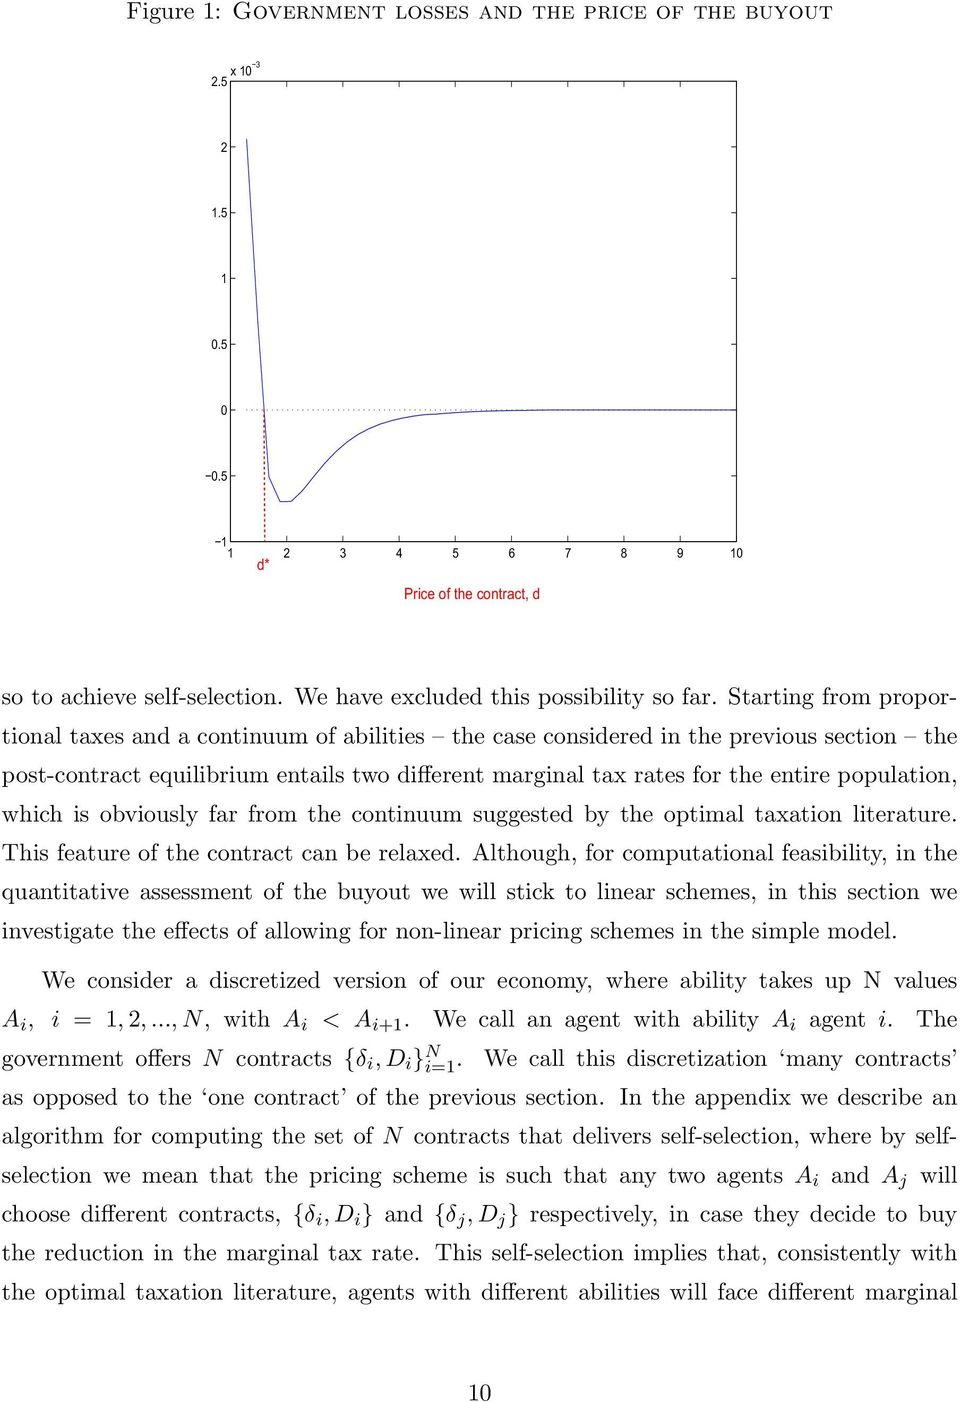 Starting from proportional taxes and a continuum of abilities the case considered in the previous section the post-contract equilibrium entails two different marginal tax rates for the entire